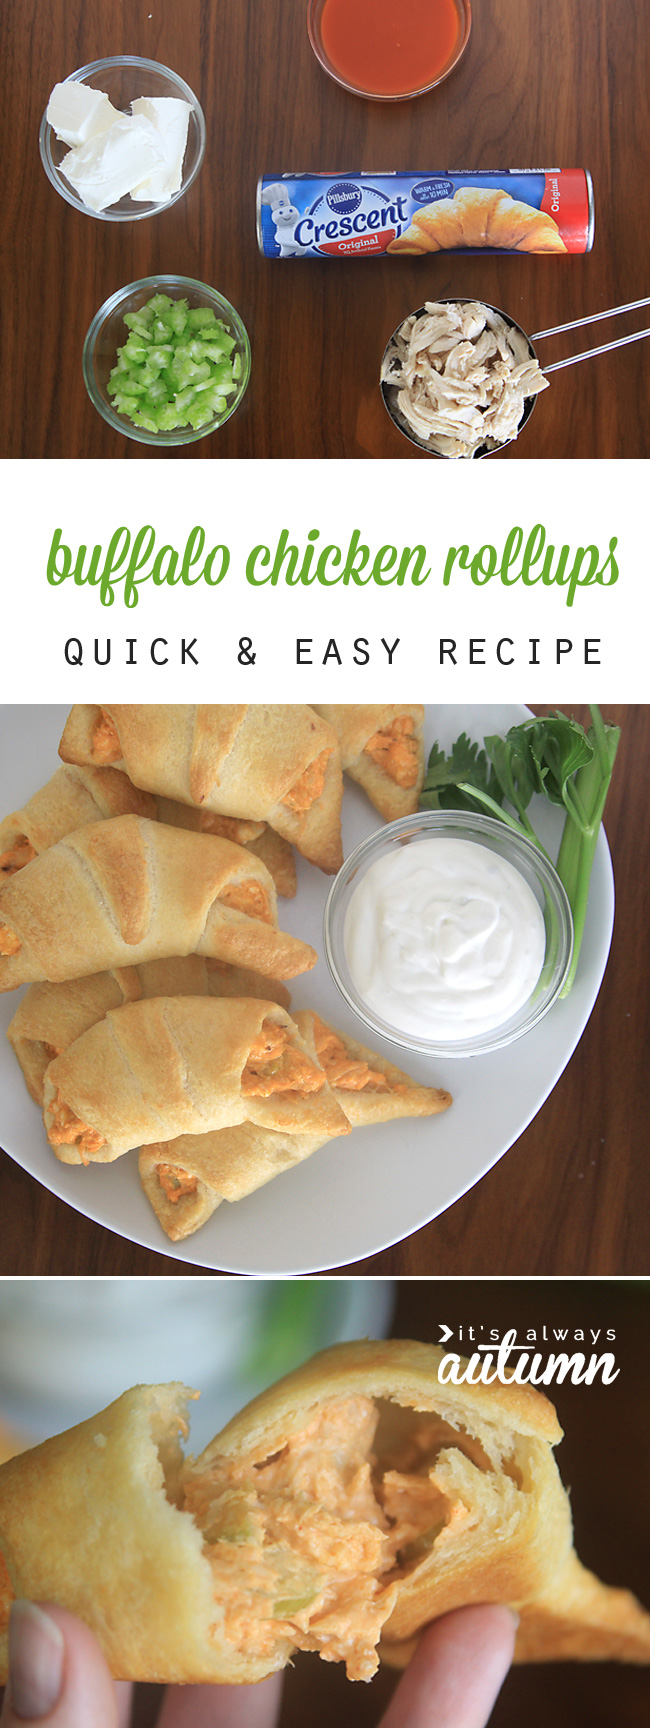 Buffalo chicken rollups on a plate with ranch; ingredients